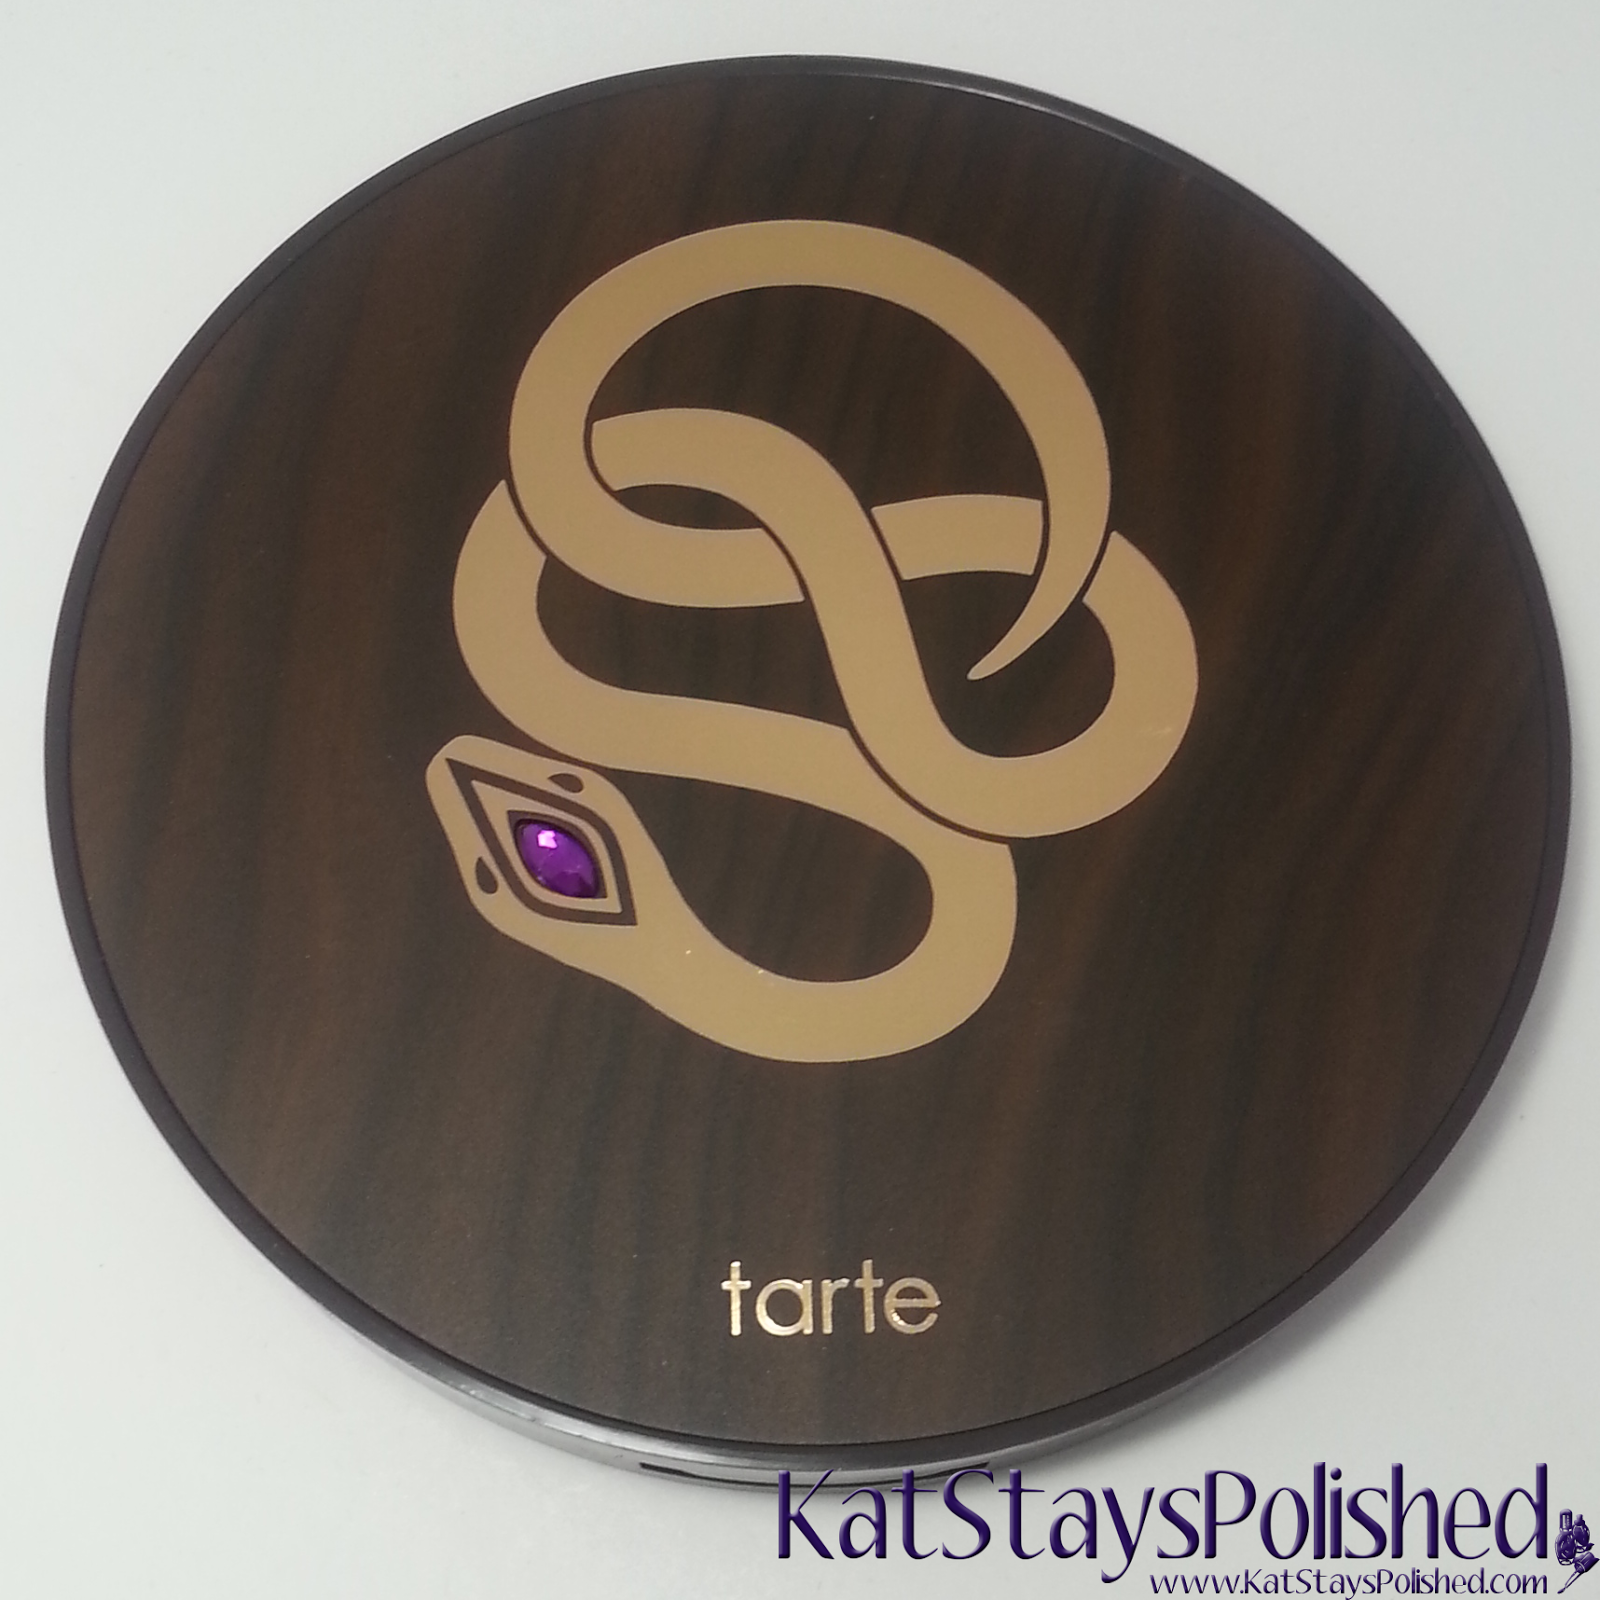 Tarte Rainforest After Dark Palette | Kat Stays Polished